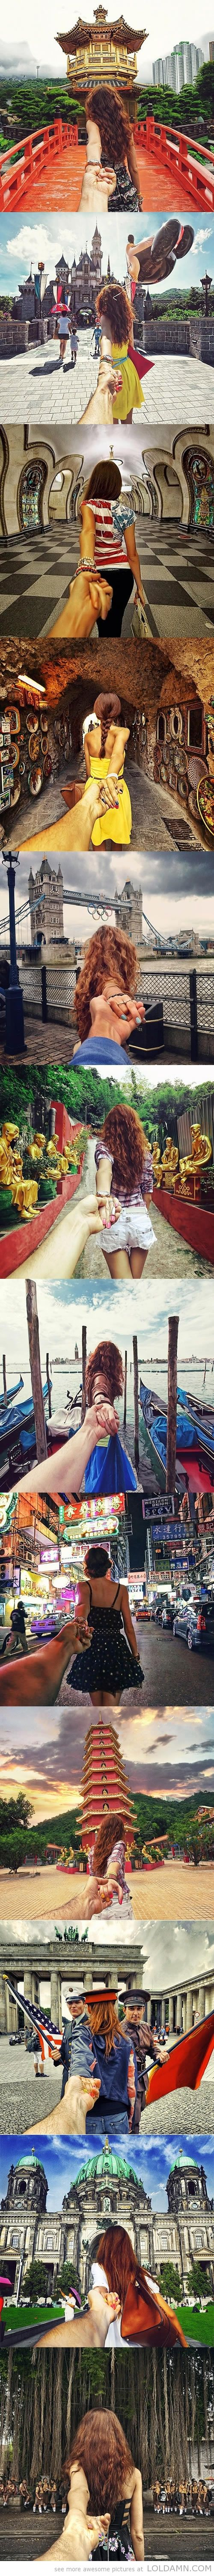 Photographer's girlfriend leads him around the world.